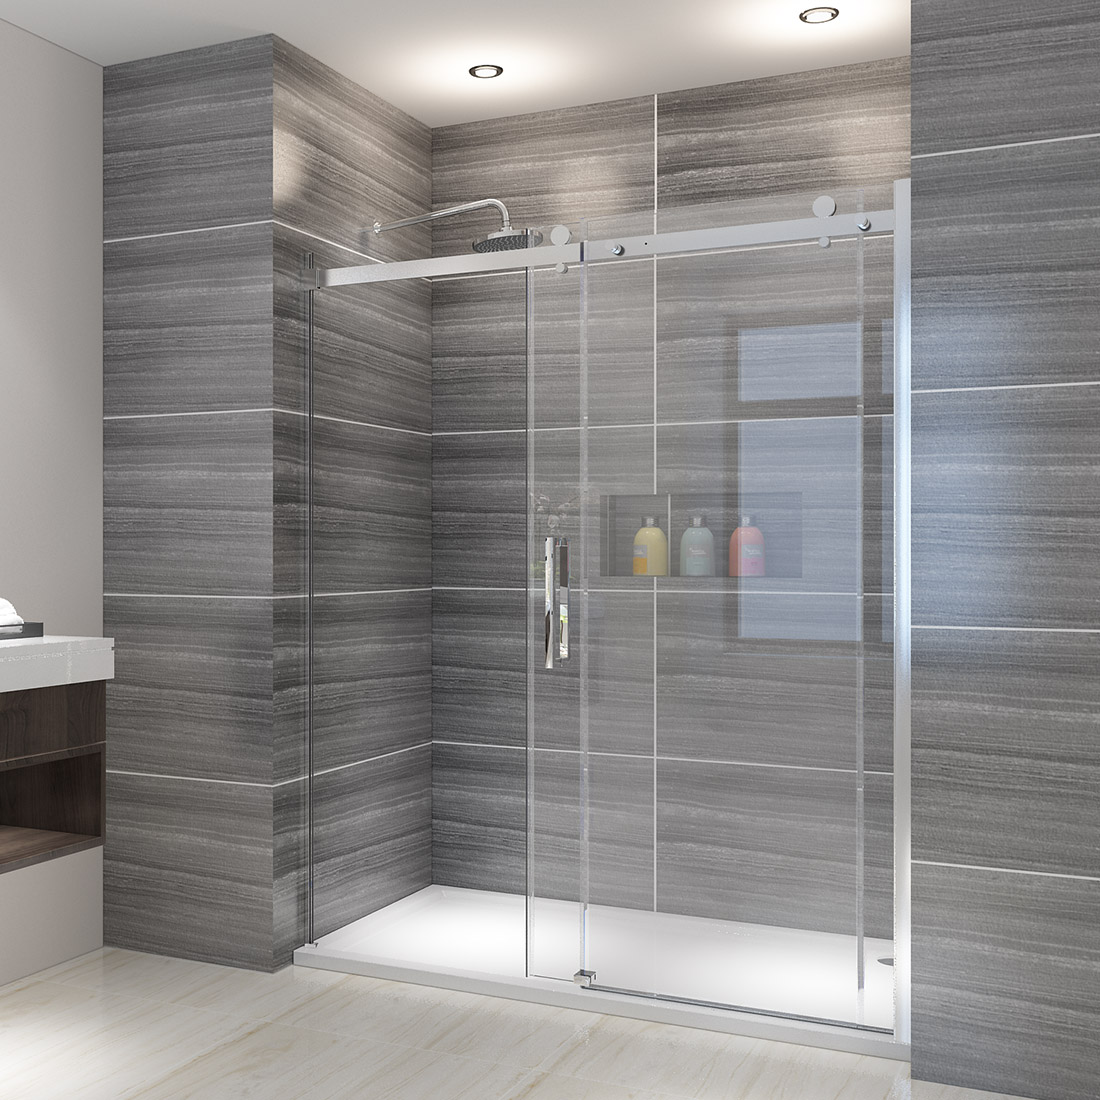 Details About Elegant Showers Semi Frameless Sliding 5 16 Glass Shower Doors 58 5 60 W Chrome